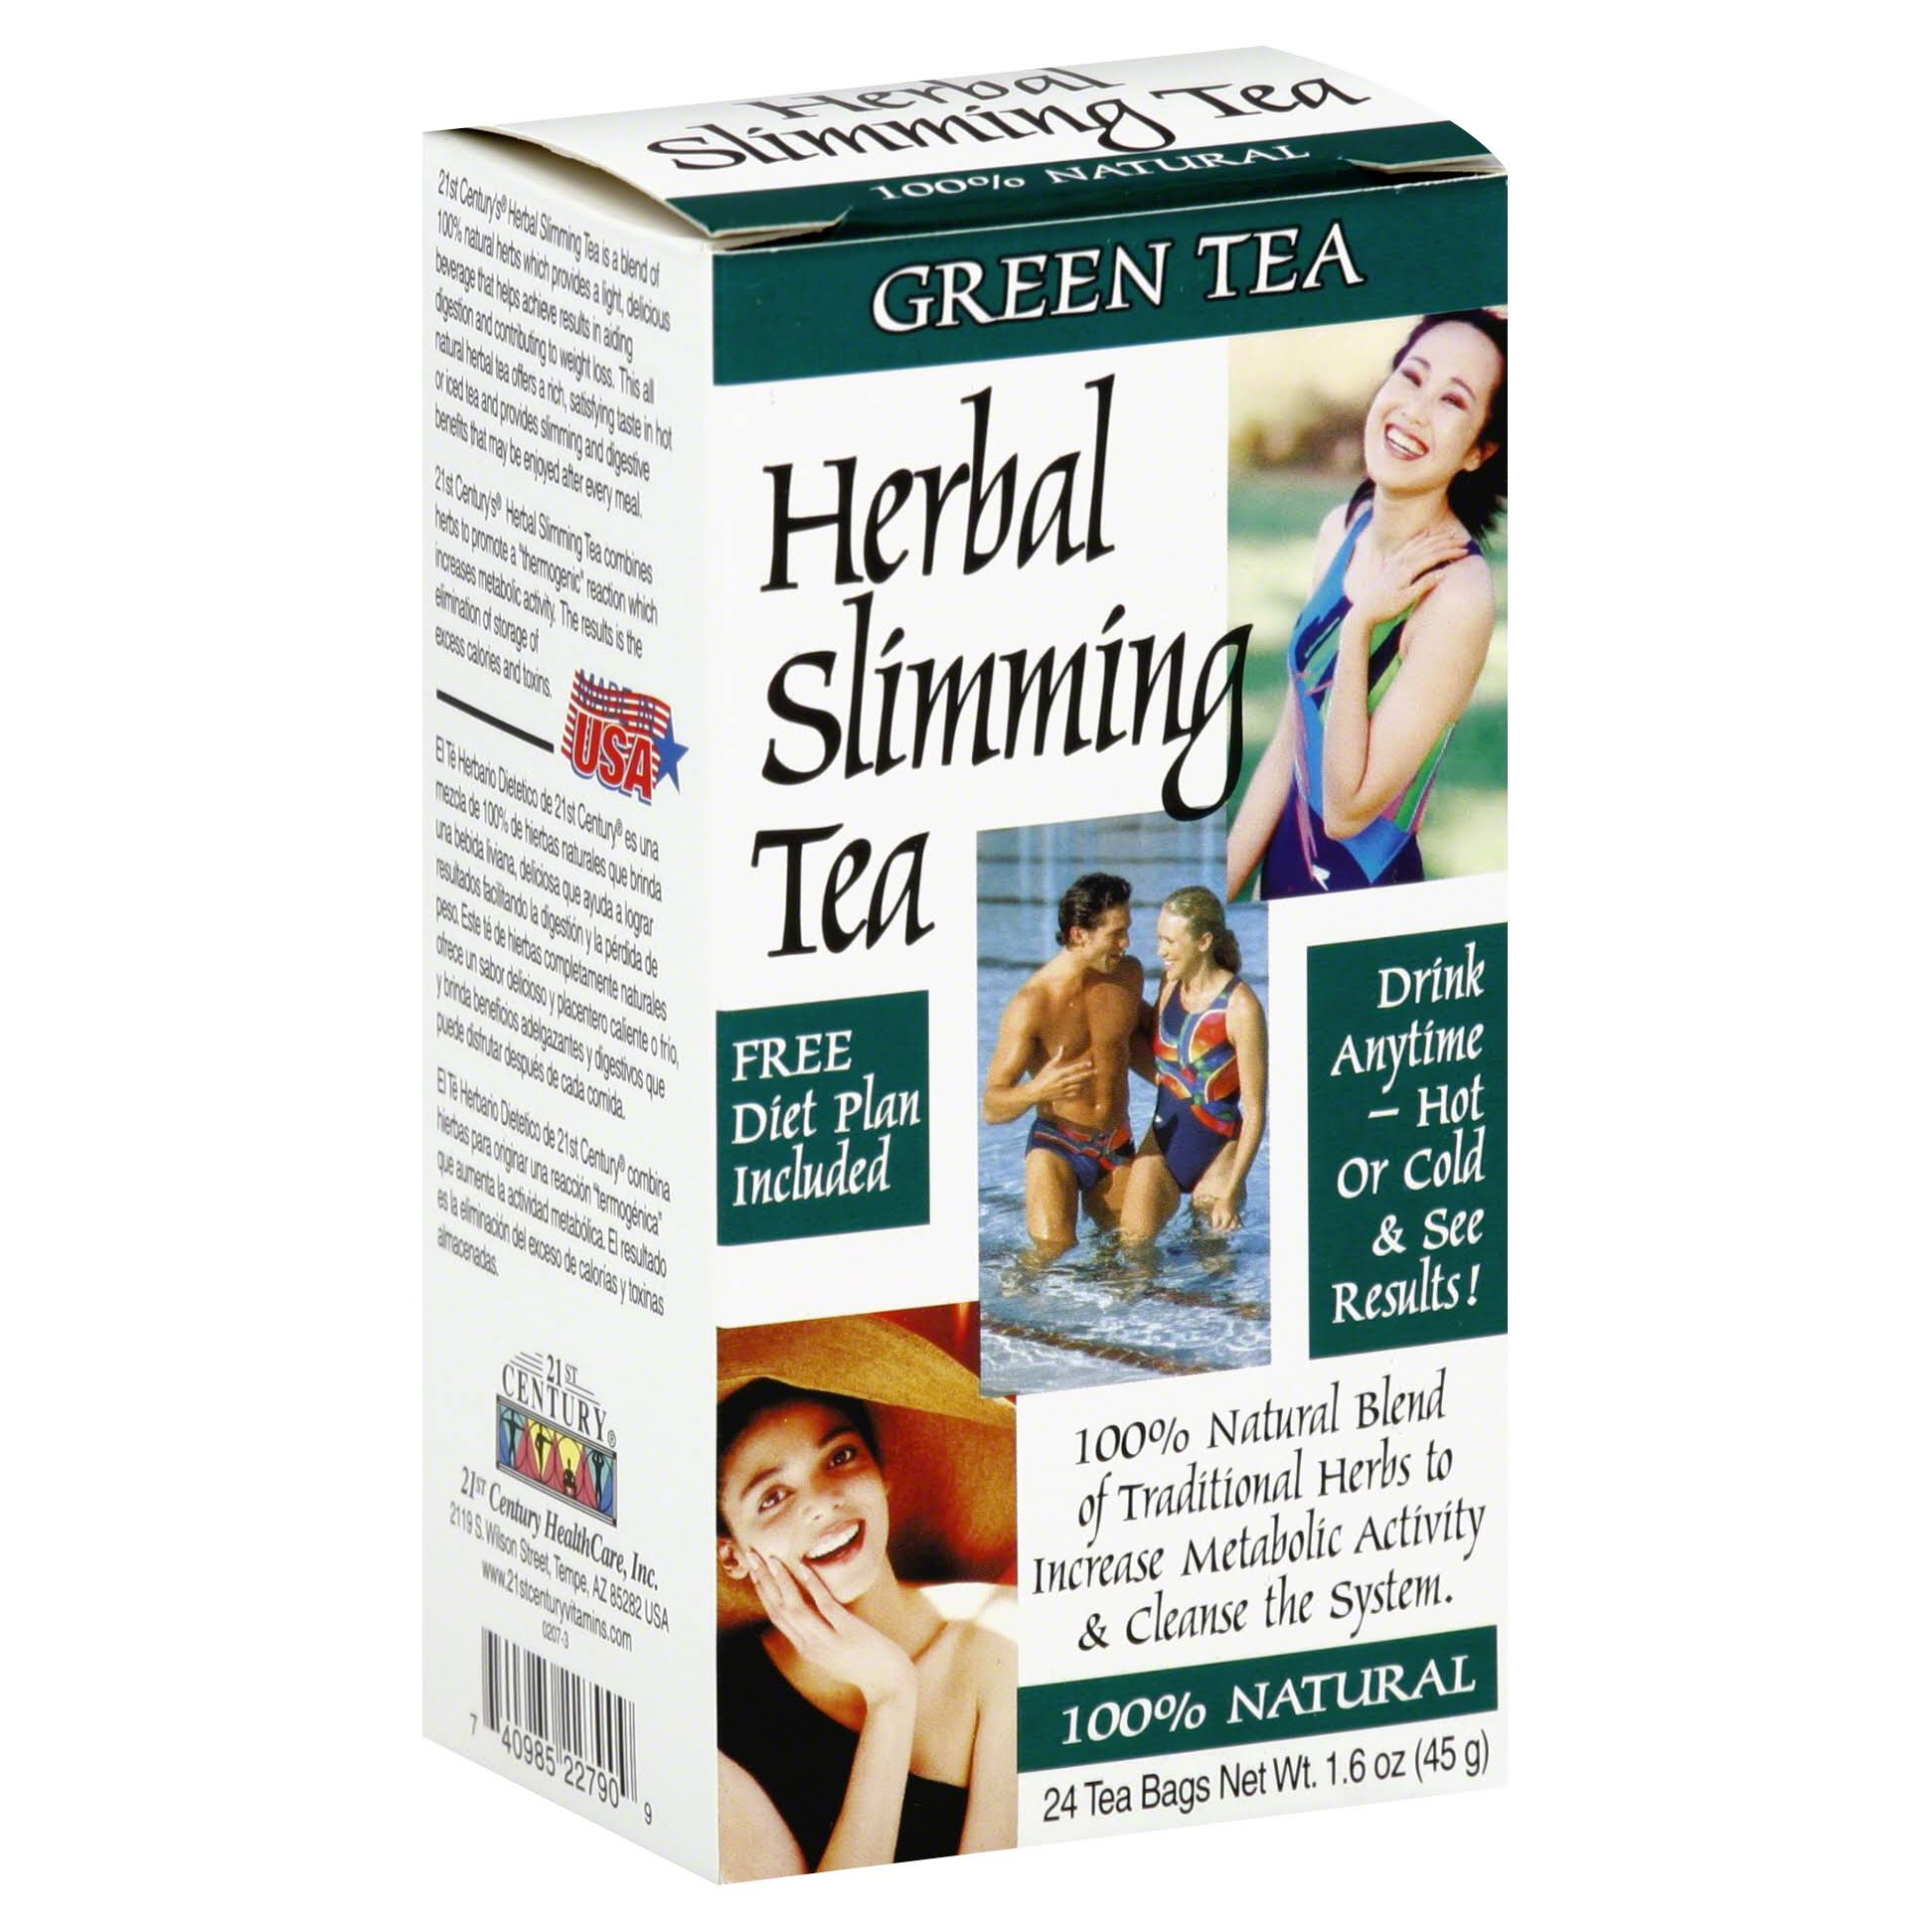 21ST Century Herbal Slimming Tea - Caffeine Free, Green Tea, 24ct, 1.60z